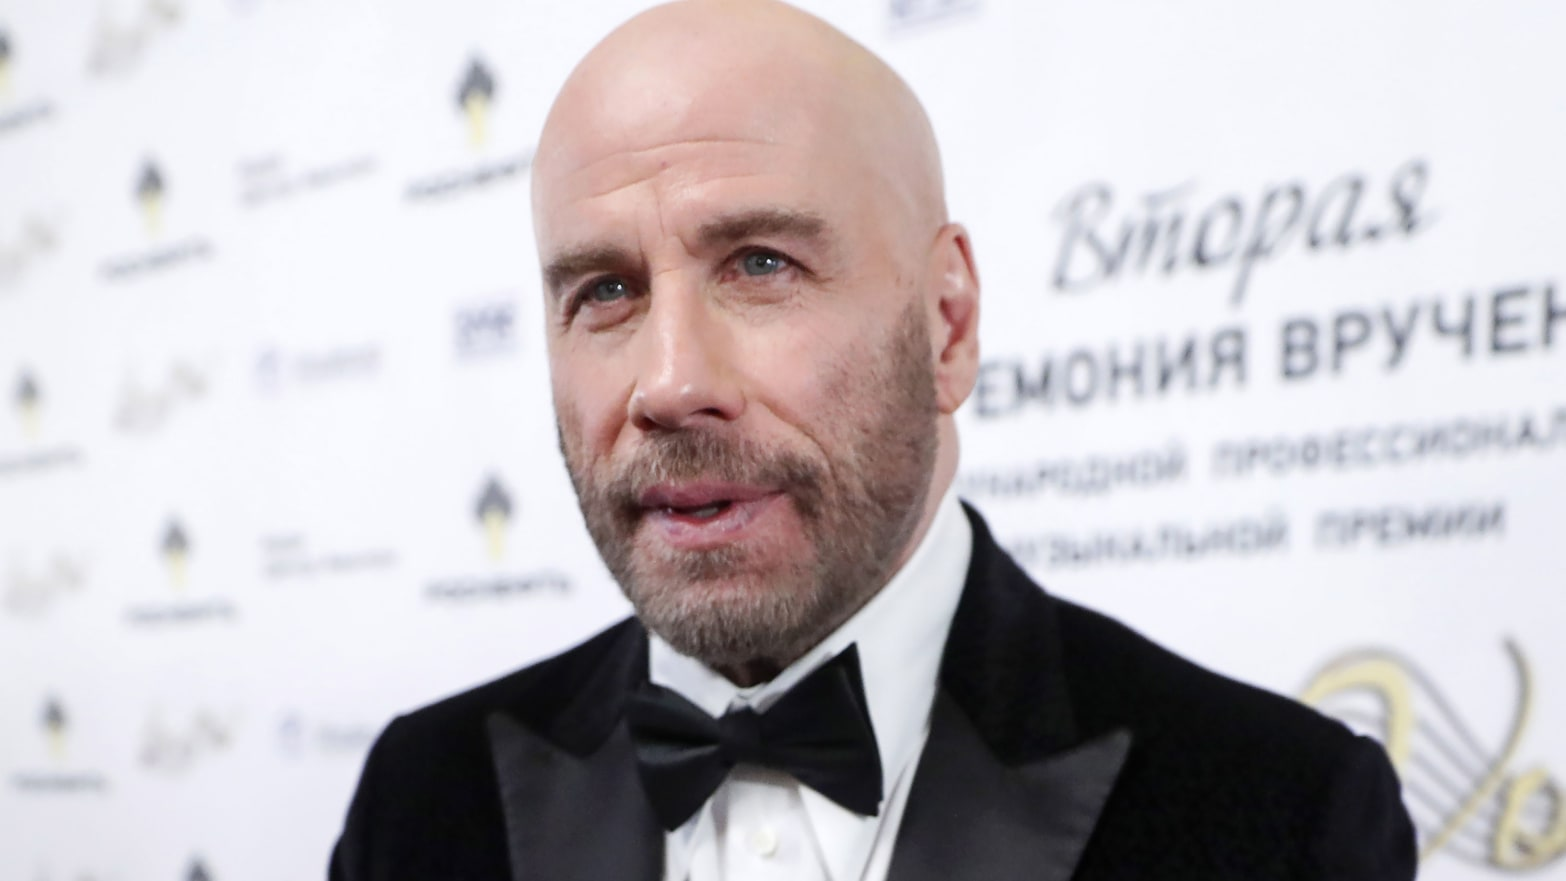 Why Is John Travolta Palling Around With Putin's Cronies in Russia?